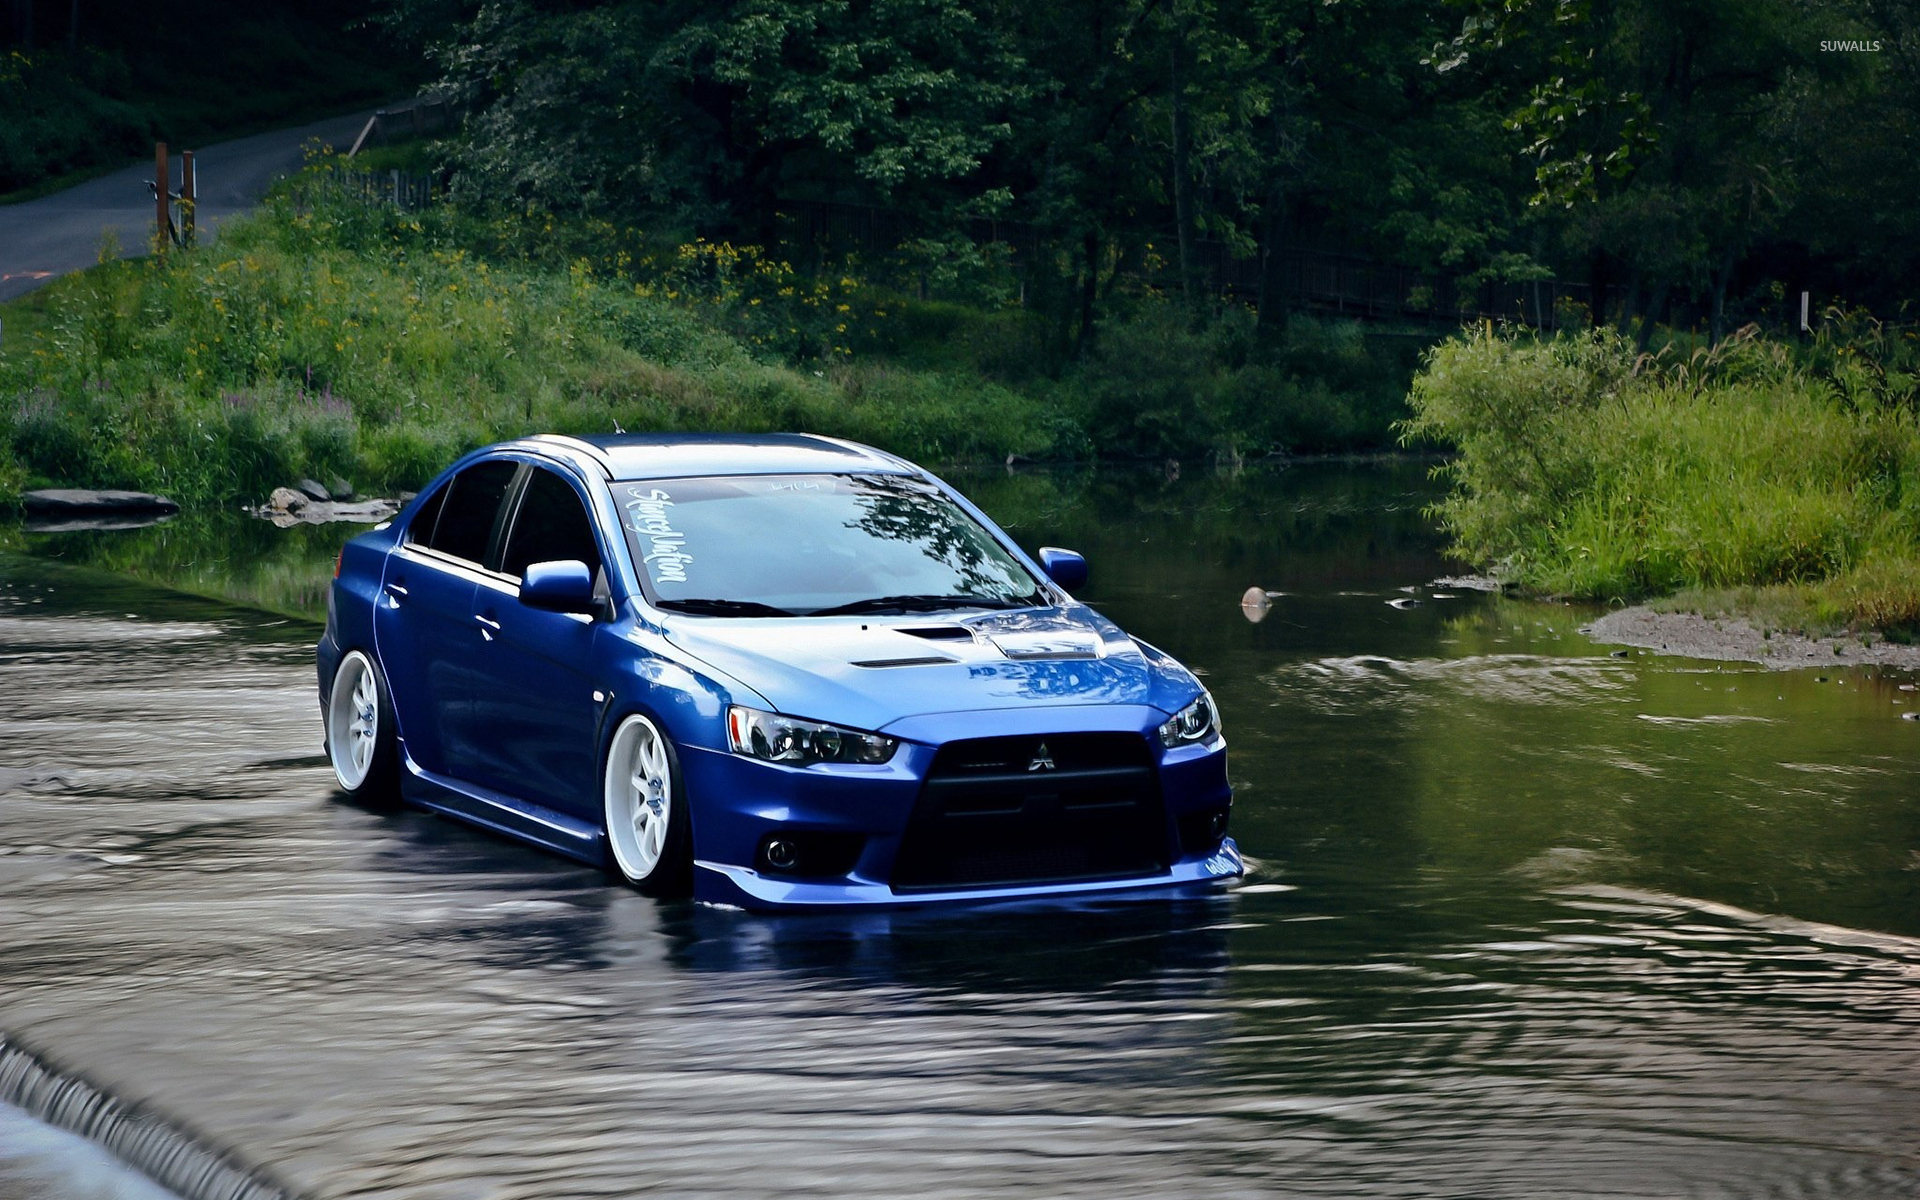 blue mitsubishi lancer evolution in the water wallpaper - car